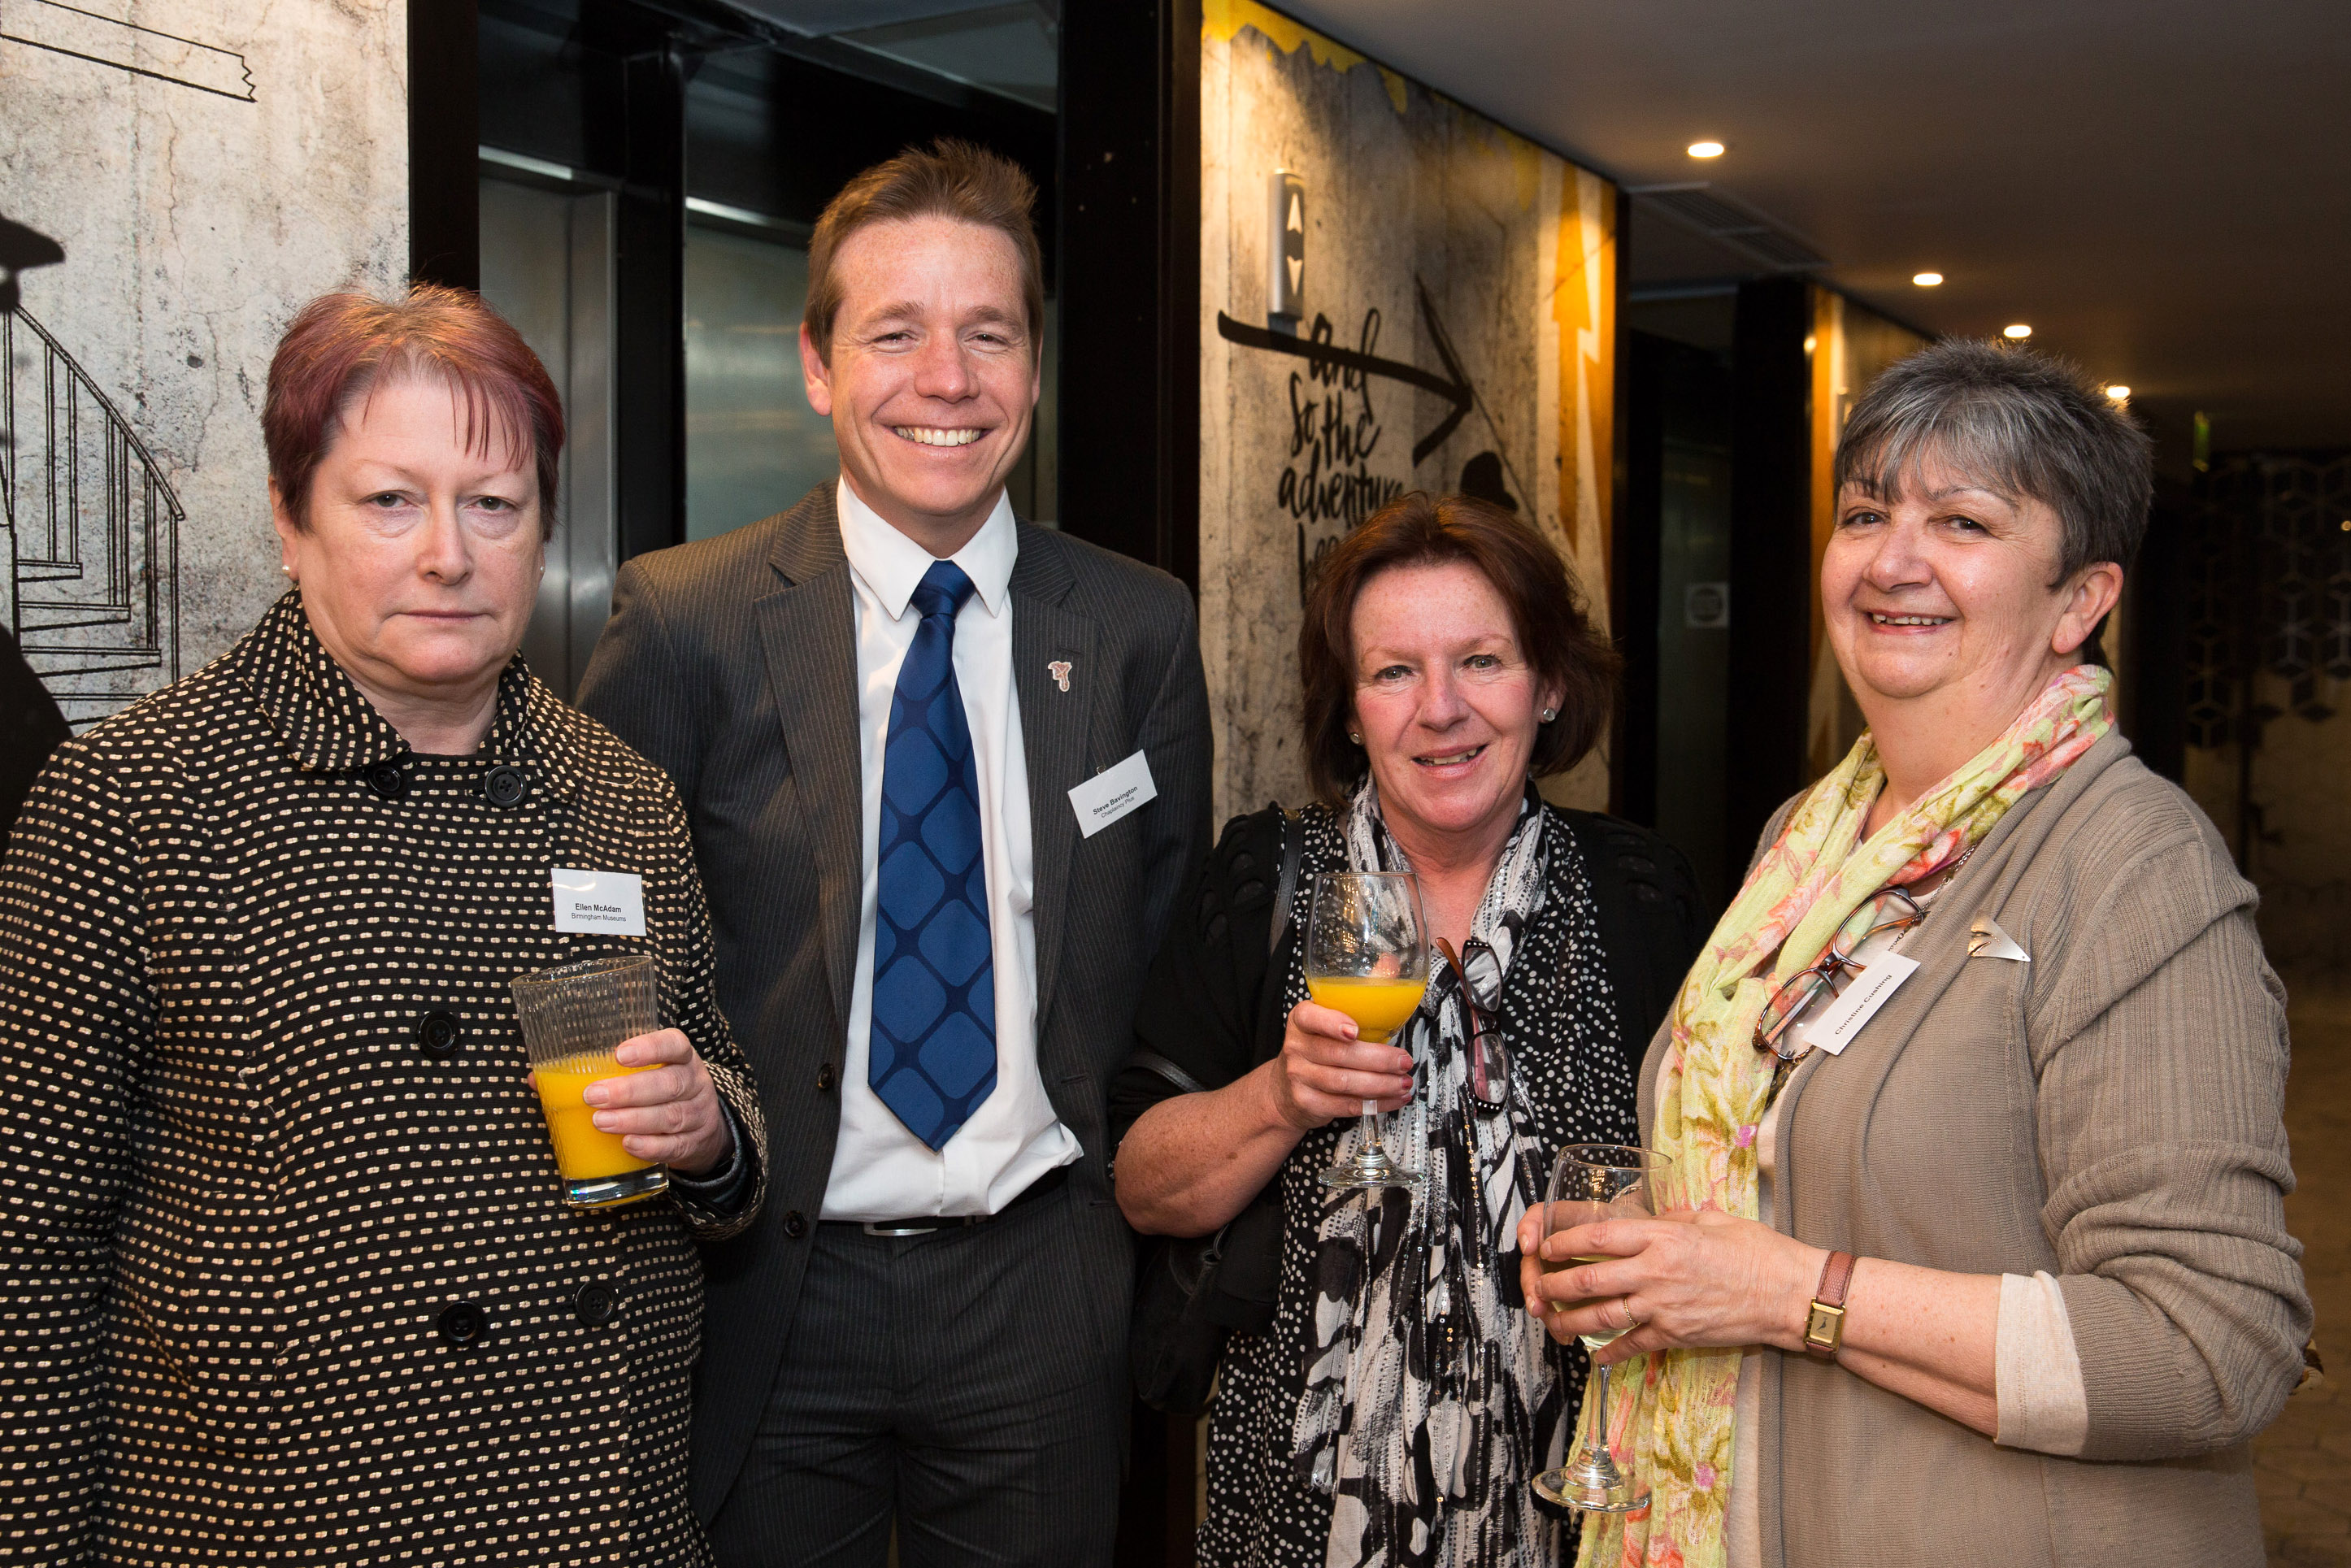 Pictured from left, Ellen McAdam, Steve Bavington, Sue Behan, Christine Cushing.